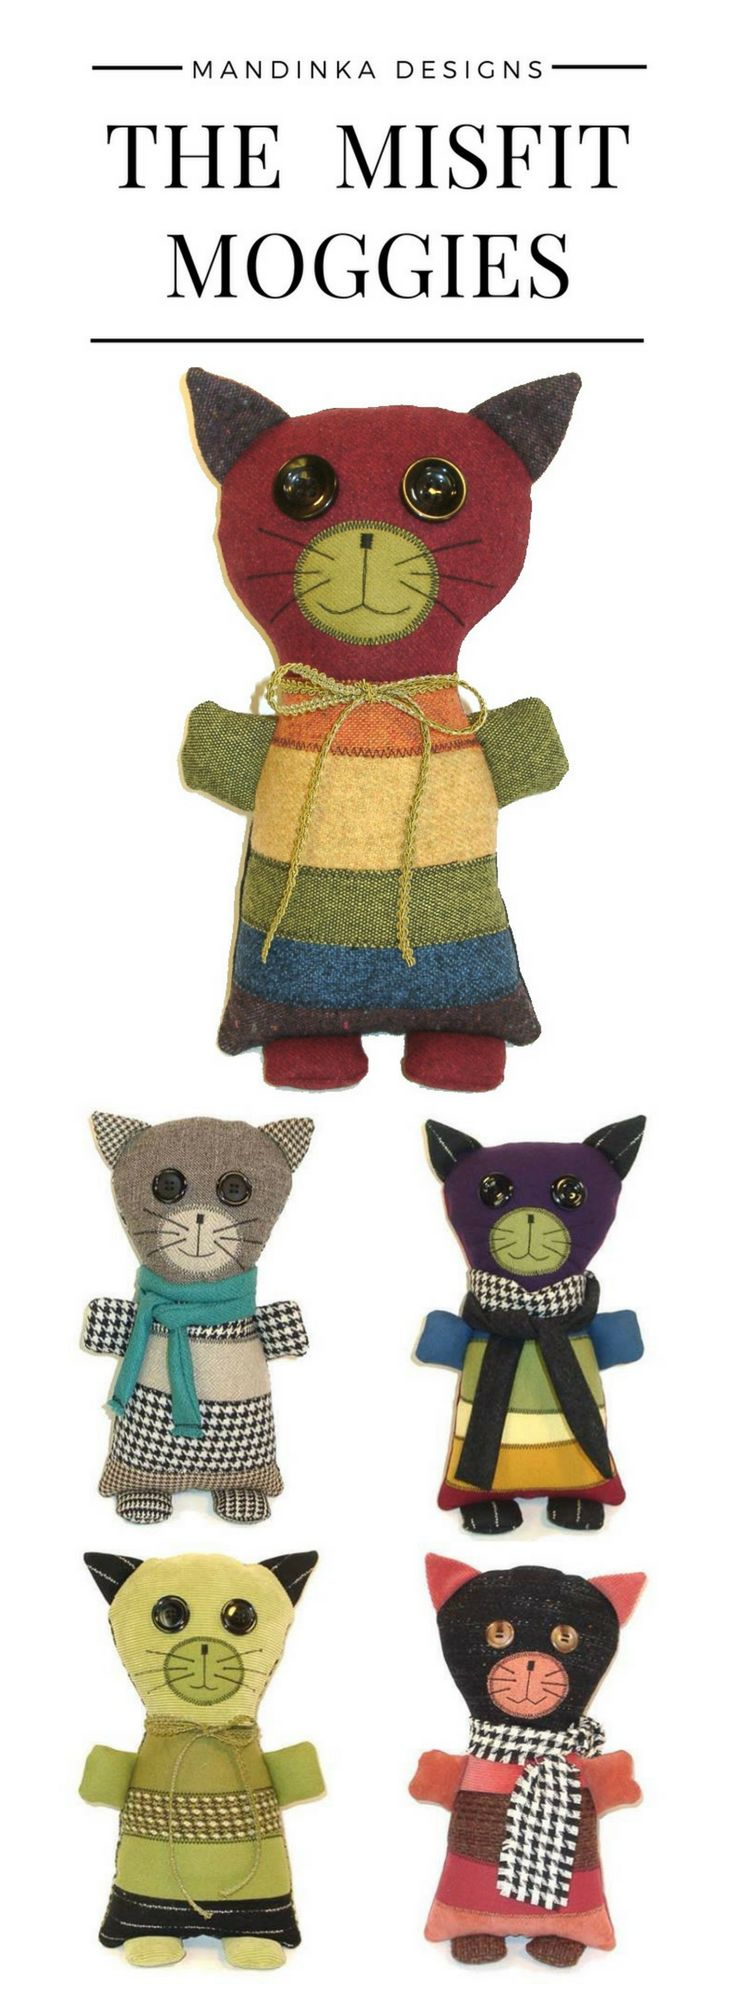 The Misfit Moggies are adorable, lovable cats made from suit coat remnants and scraps. Moggy (or moggie) is a British word for non-pedigree cats - basically the mutts of the cat world. #stuffedanimalcat #catlover #stuffedanimal #rainbow #moggies